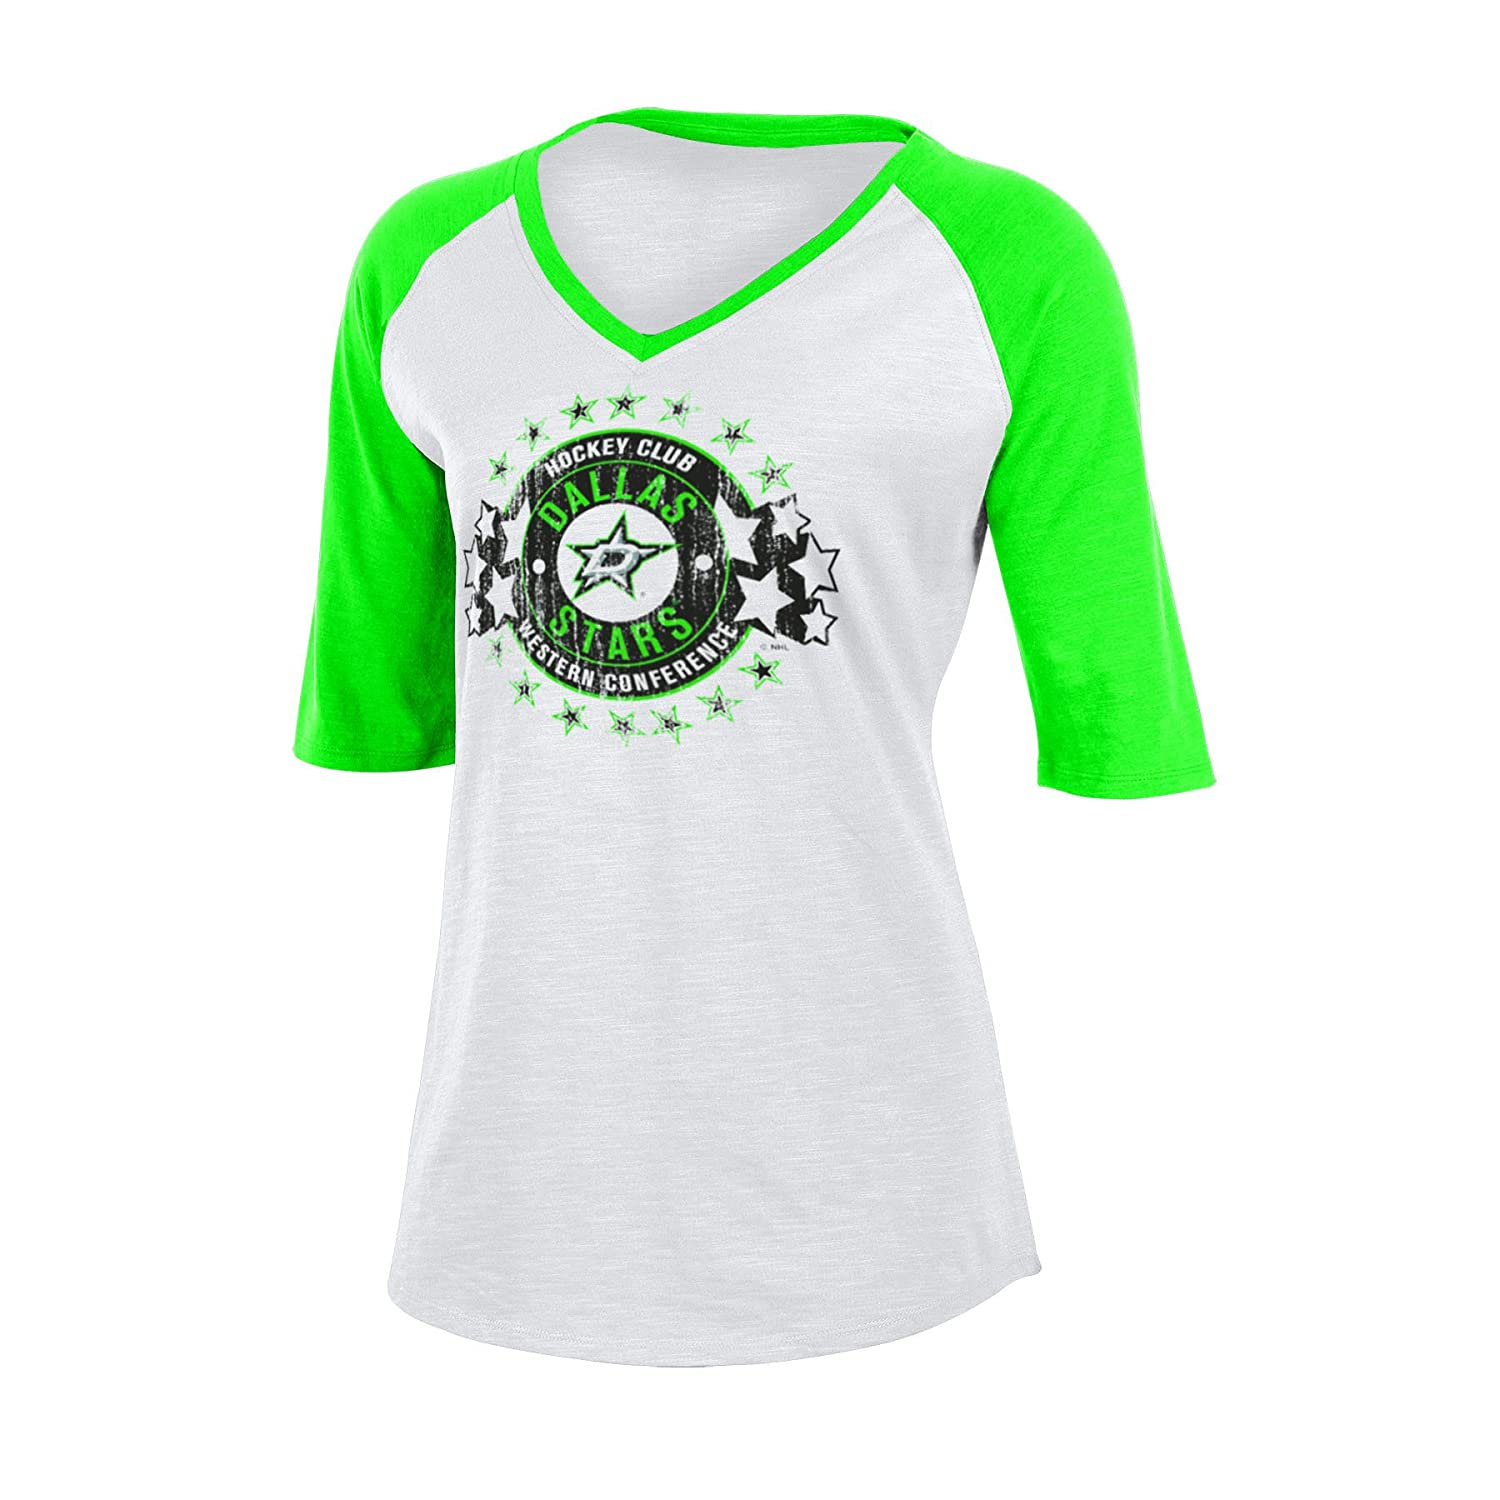 45c4ced12 Amazon.com   Knights Apparel NHL Women s Slub V Neck Tee   Sports   Outdoors